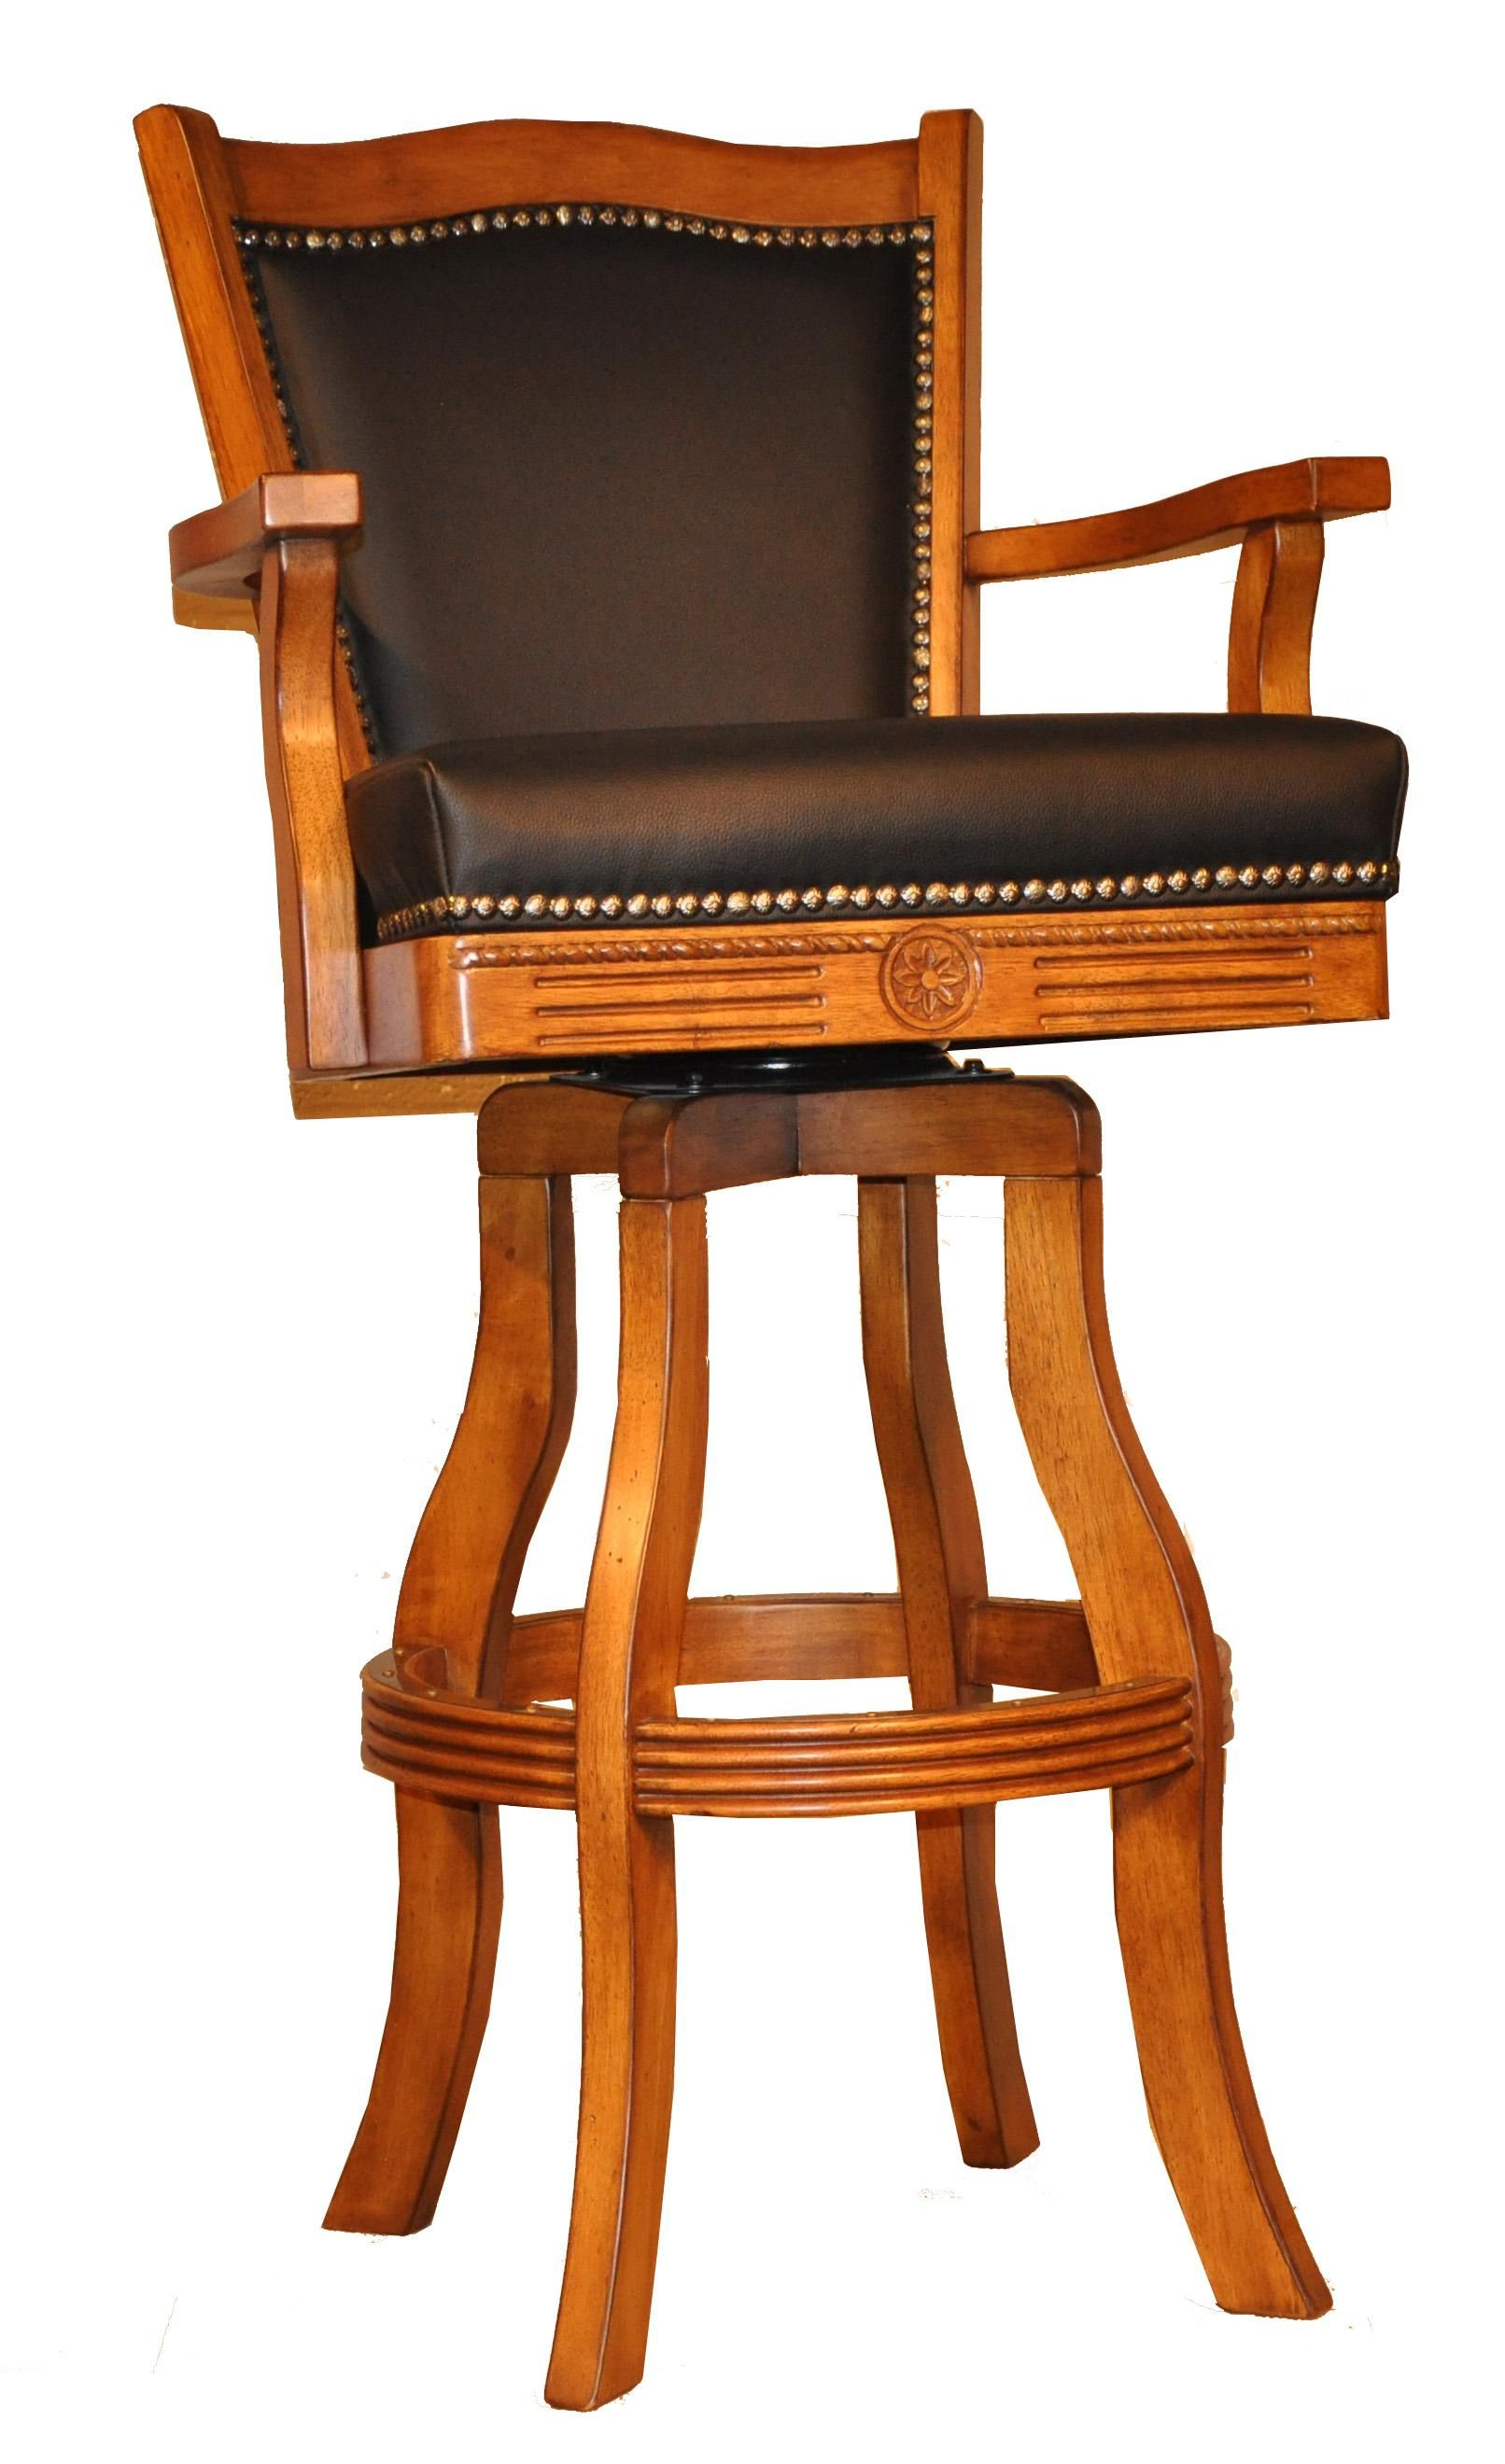 Classy Wooden Swivel Bar Stool Design Inspiration In Honey Oak